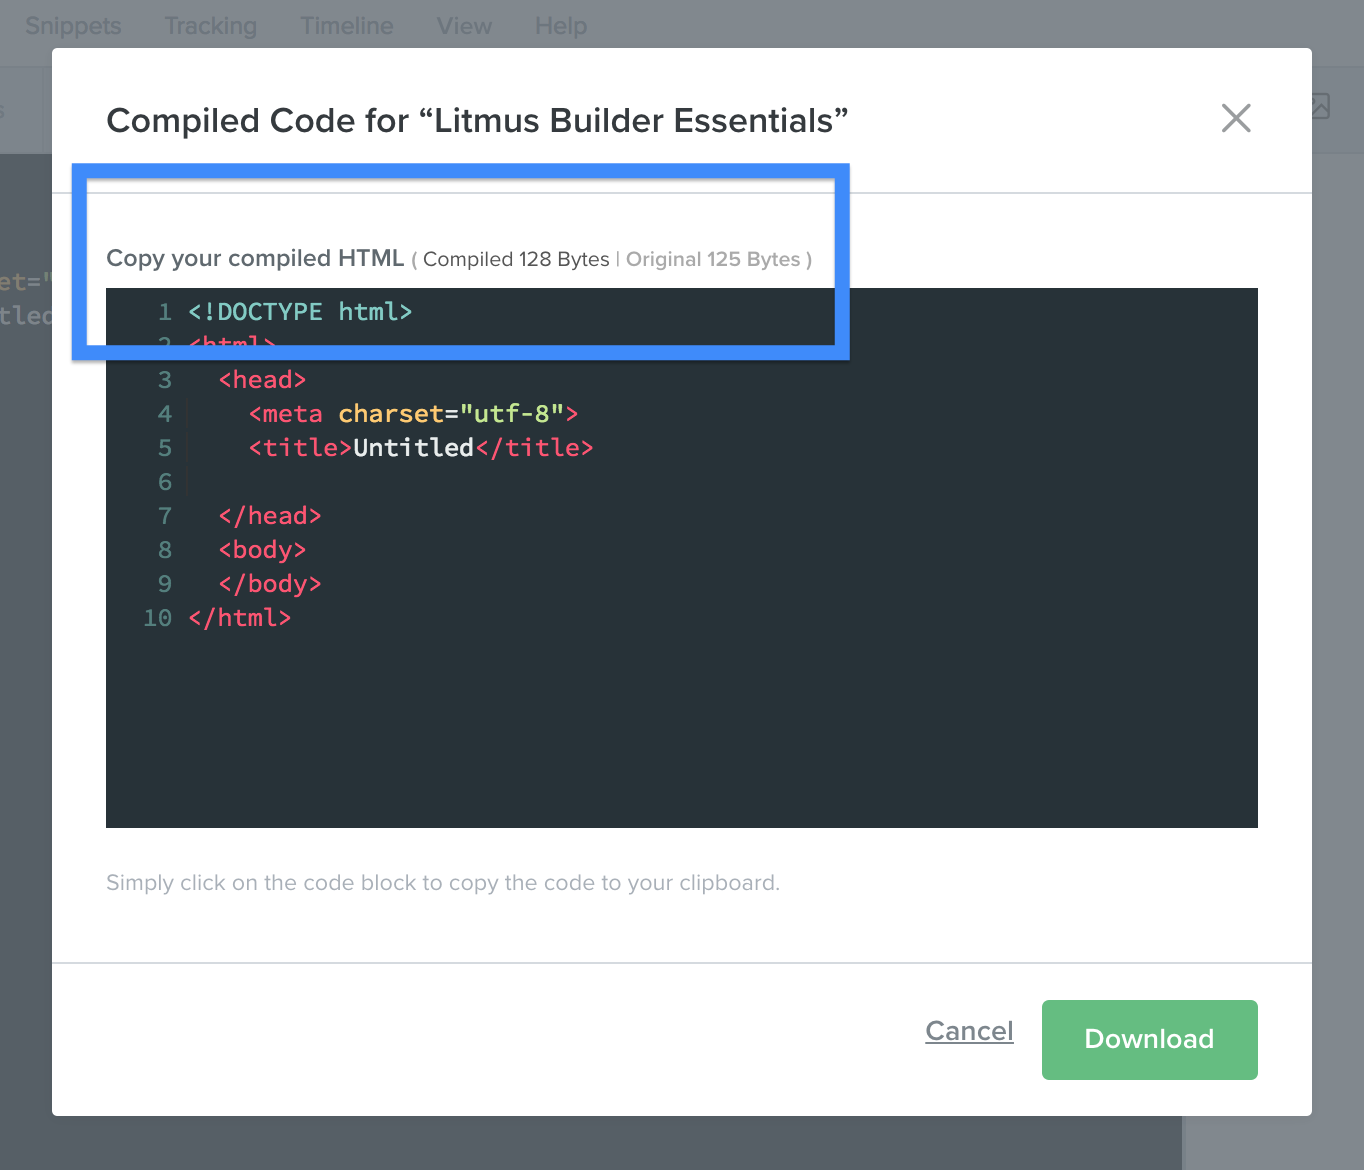 file size info when compiling HTML in Litmus Builder